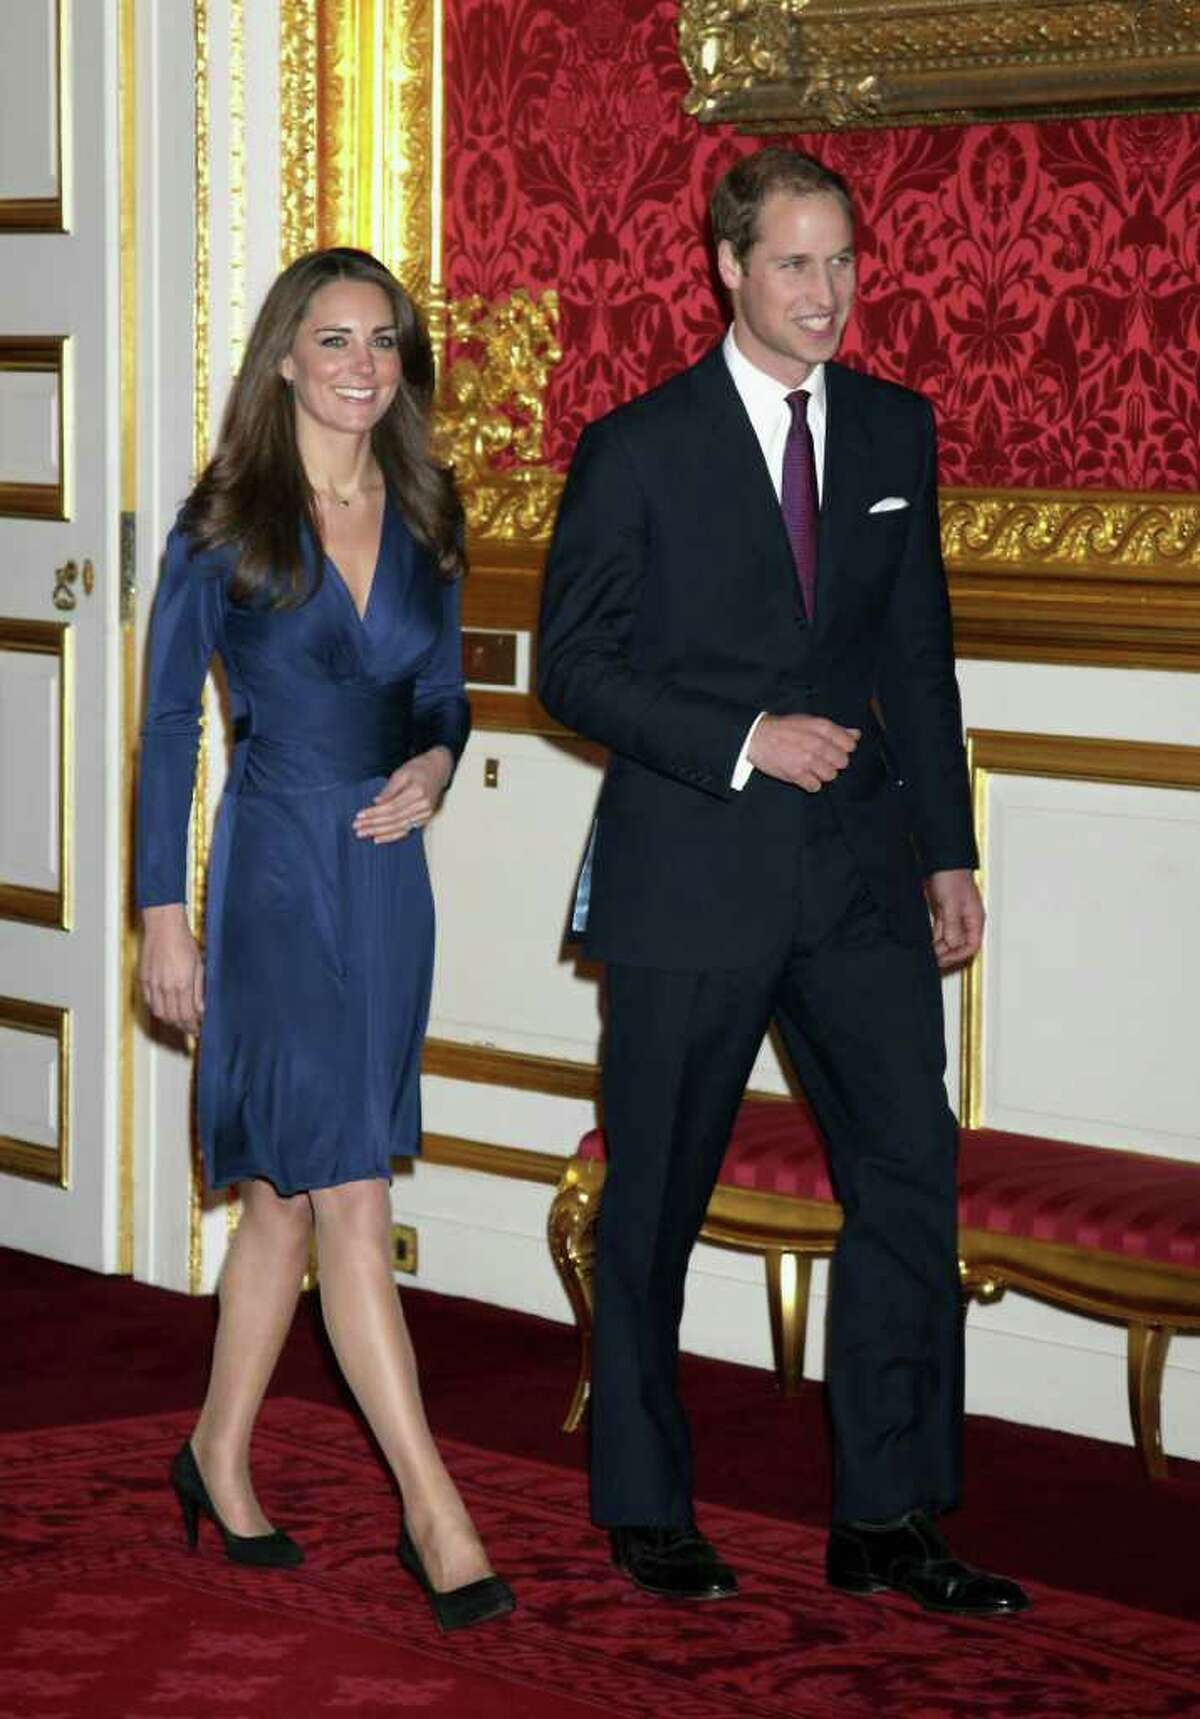 The world watched as the beaming royal couple prepared to announce their engagement in November, 2010.